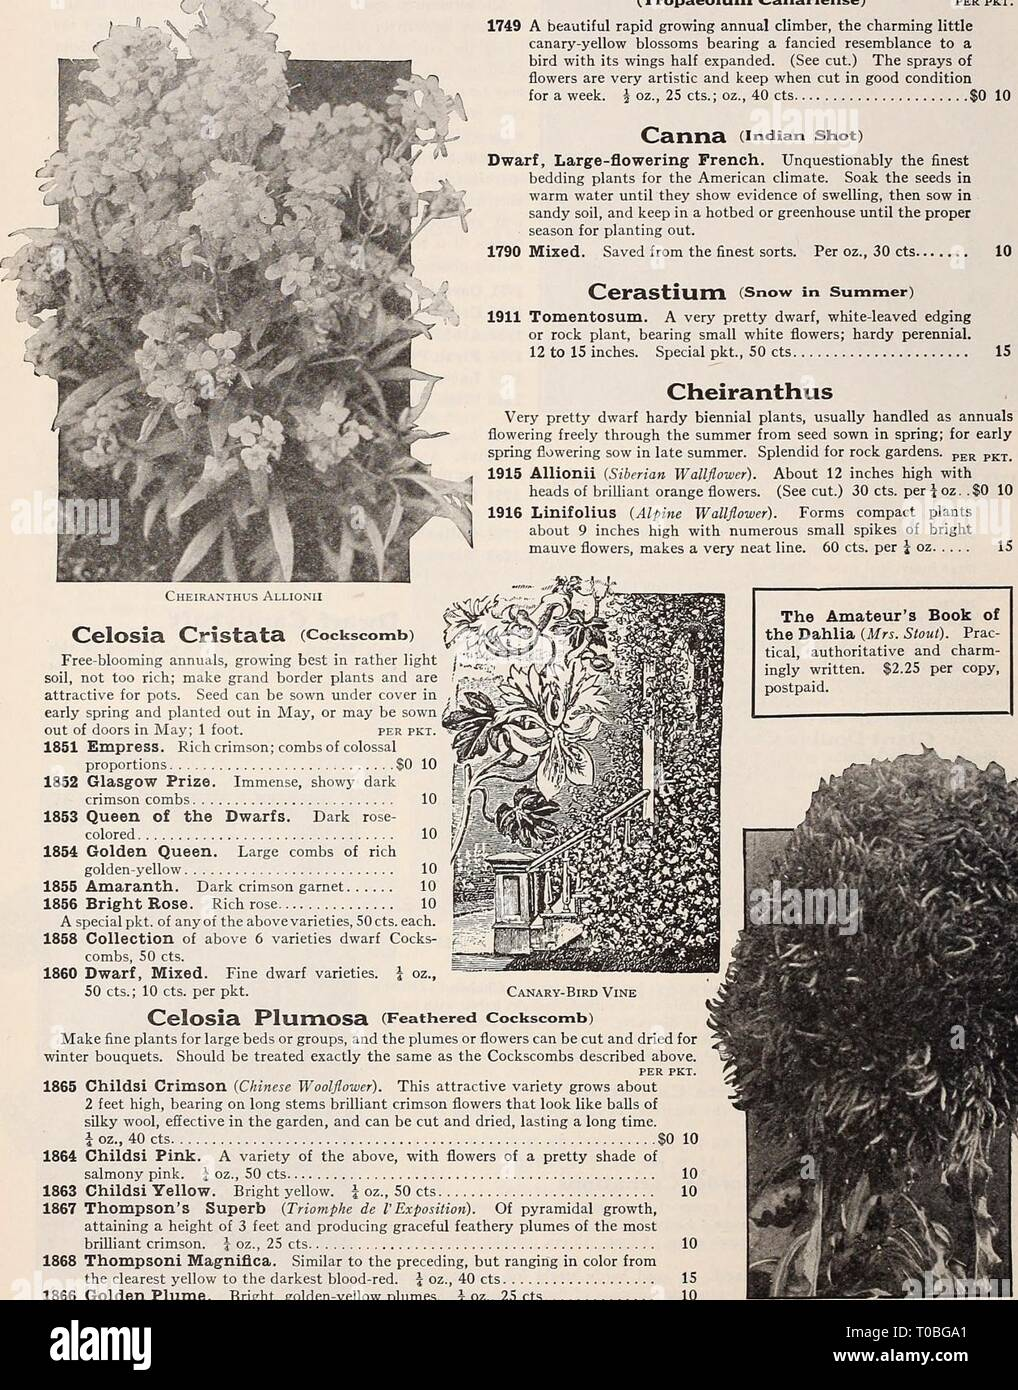 Dreer's garden book 1932 (1932) Dreer's garden book 1932 dreersgardenbook1932henr Year: 1932  kRE LIABLE FLOWER SEEDS;    Canary-bird Vine (Tropaeolum Canariense) per pkt. 1749 A beautiful rapid growing annual climber, the charming little canary-yellow blossoms bearing a fancied resemblance to a bird with its wings half expanded. (See cut.) The sprays of flowers are very artistic and keep when cut in good condition for a week.  oz., 25 cts.; oz., 40 cts $0 10 Canna (Indian Shot) Dwarf, Large-flowering French. Unquestionably the finest bedding plants for the American climate. Soak the seeds in - Stock Image